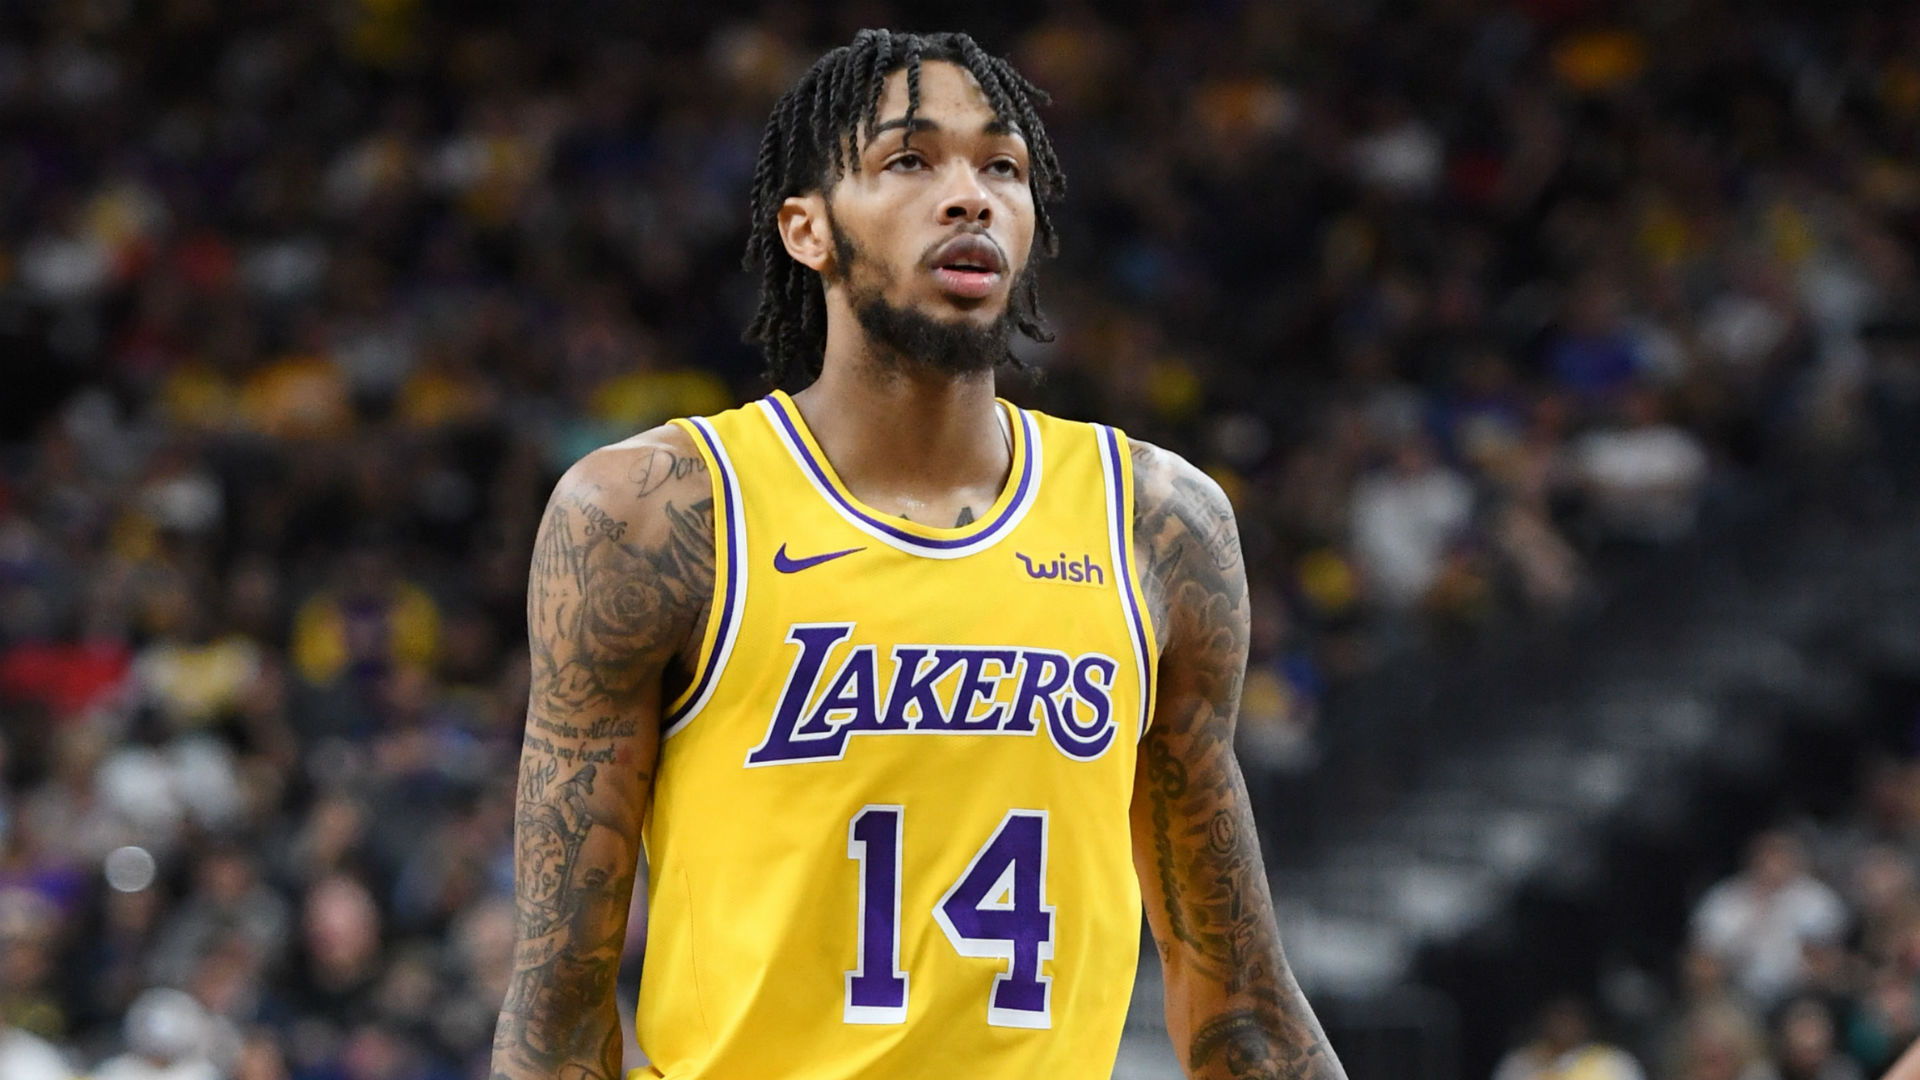 Brandon Ingram injury update: Lakers F expected to make full recovery for next season